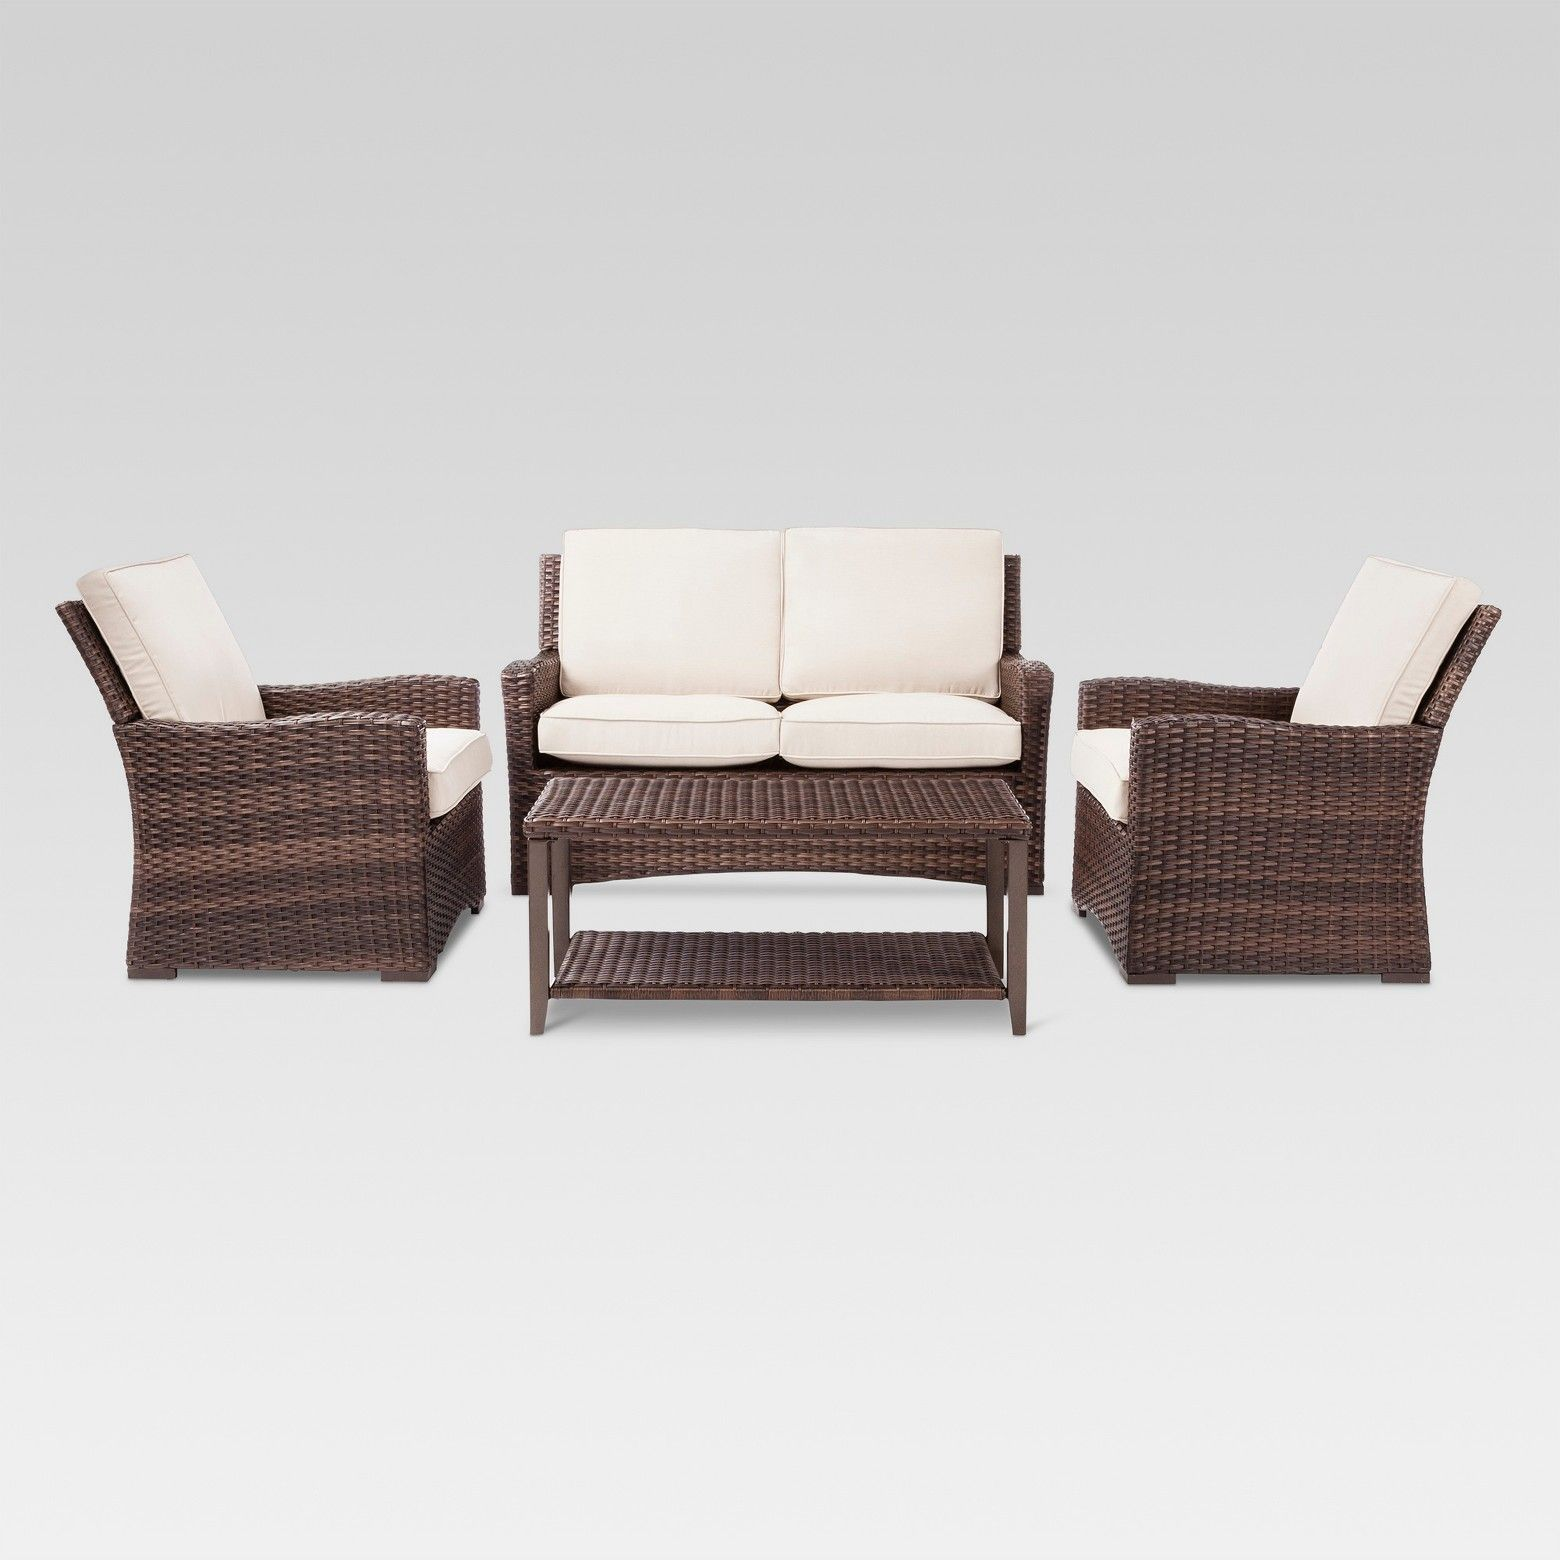 Step up your outdoor decor game with the Halsted 4pc Wicker Patio